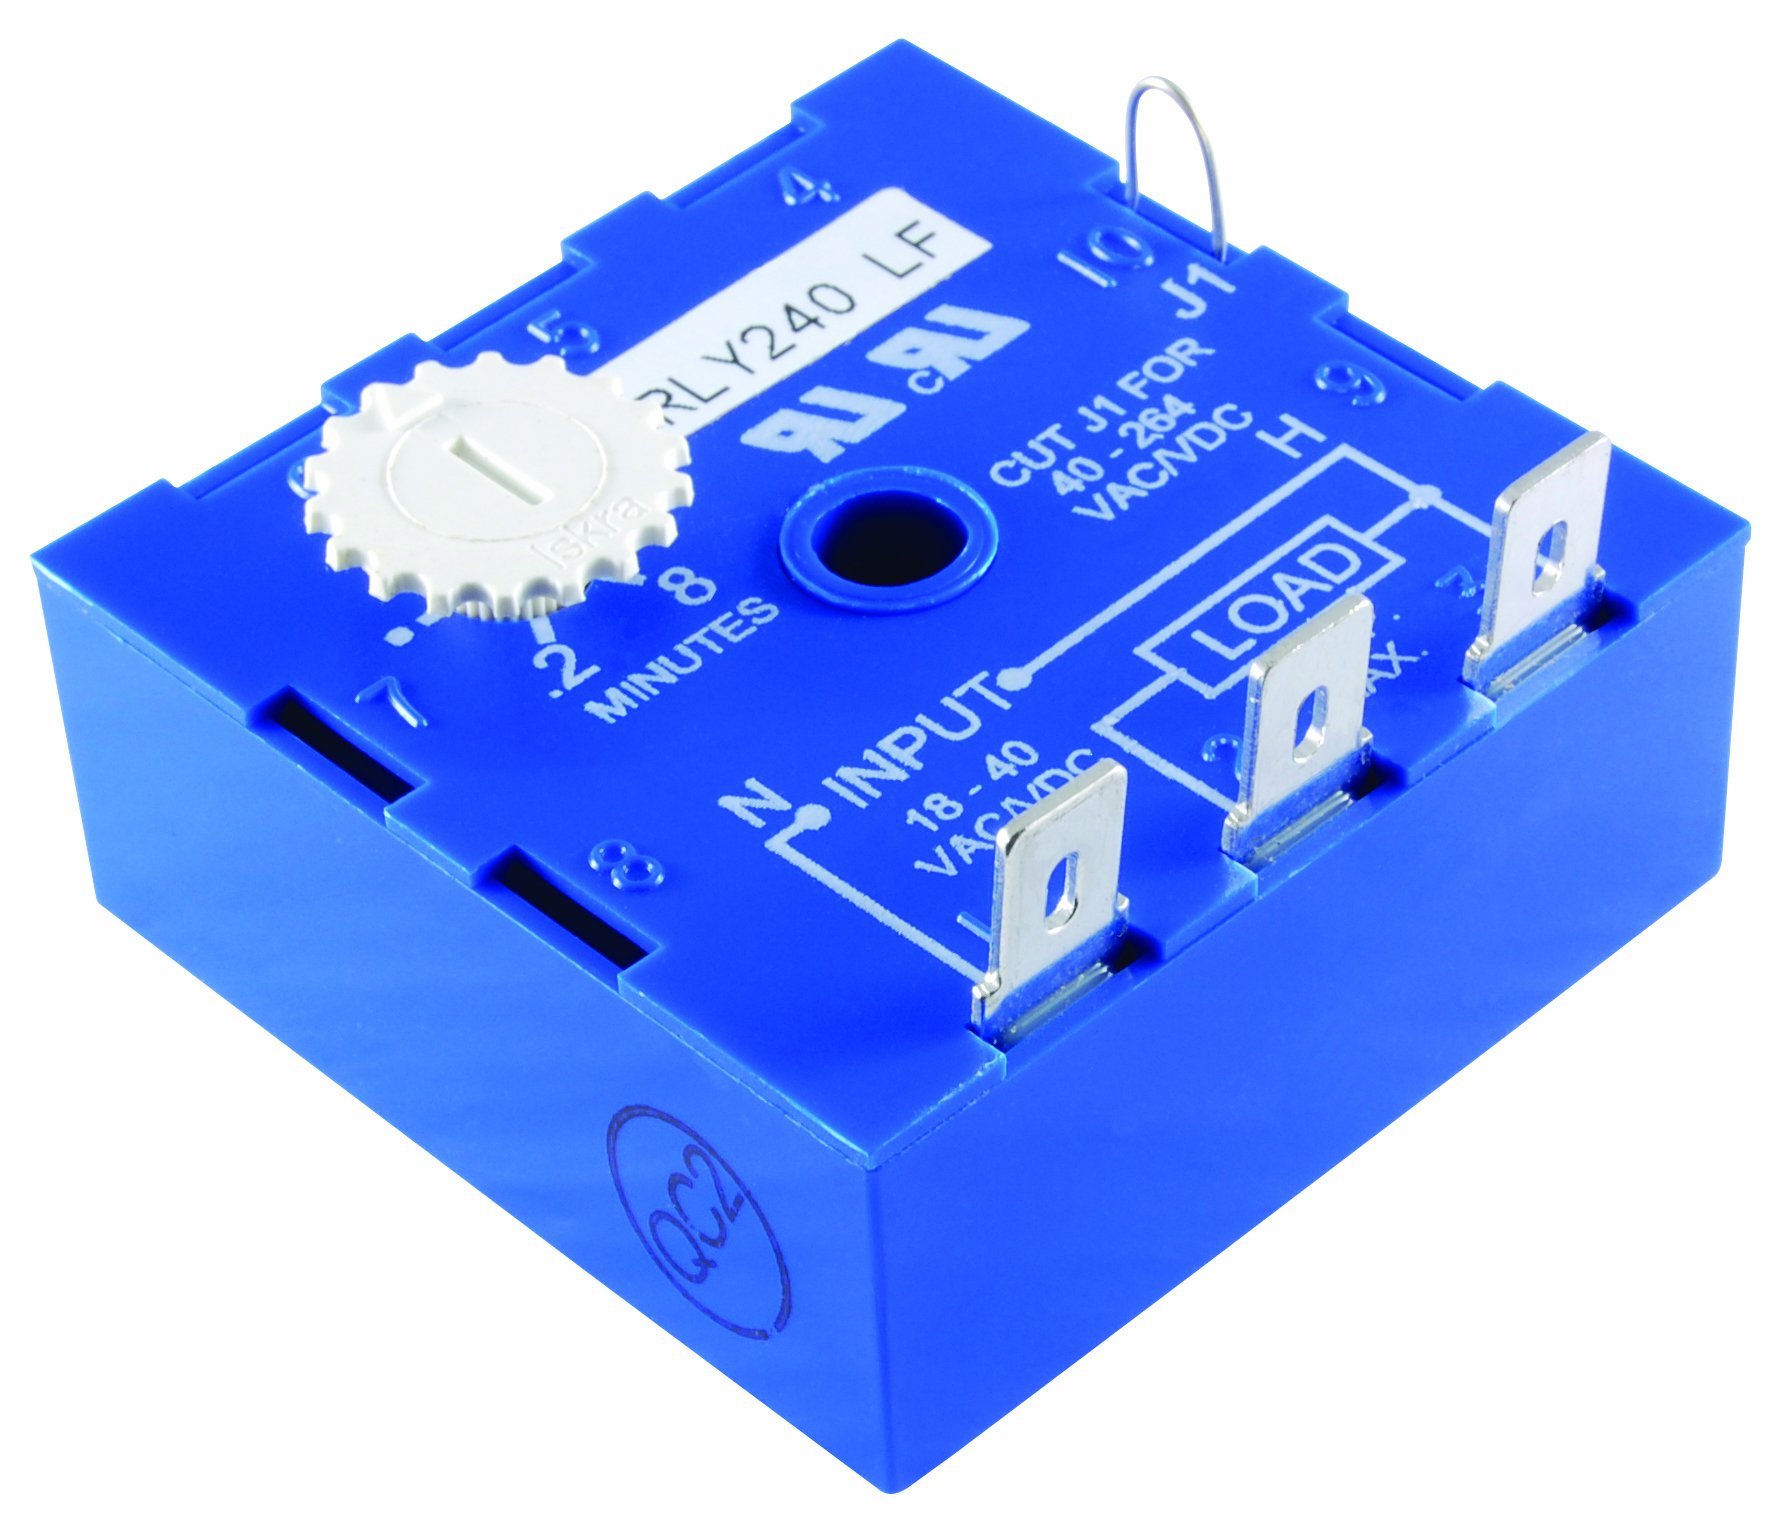 NTE ELECTRONICS RLY240 RELAY-SOLID STATE UNIVERSAL CUBE TIMER 19-288 AC/DC INTERVAL ON KNOB TIMING ADJUSTMENT